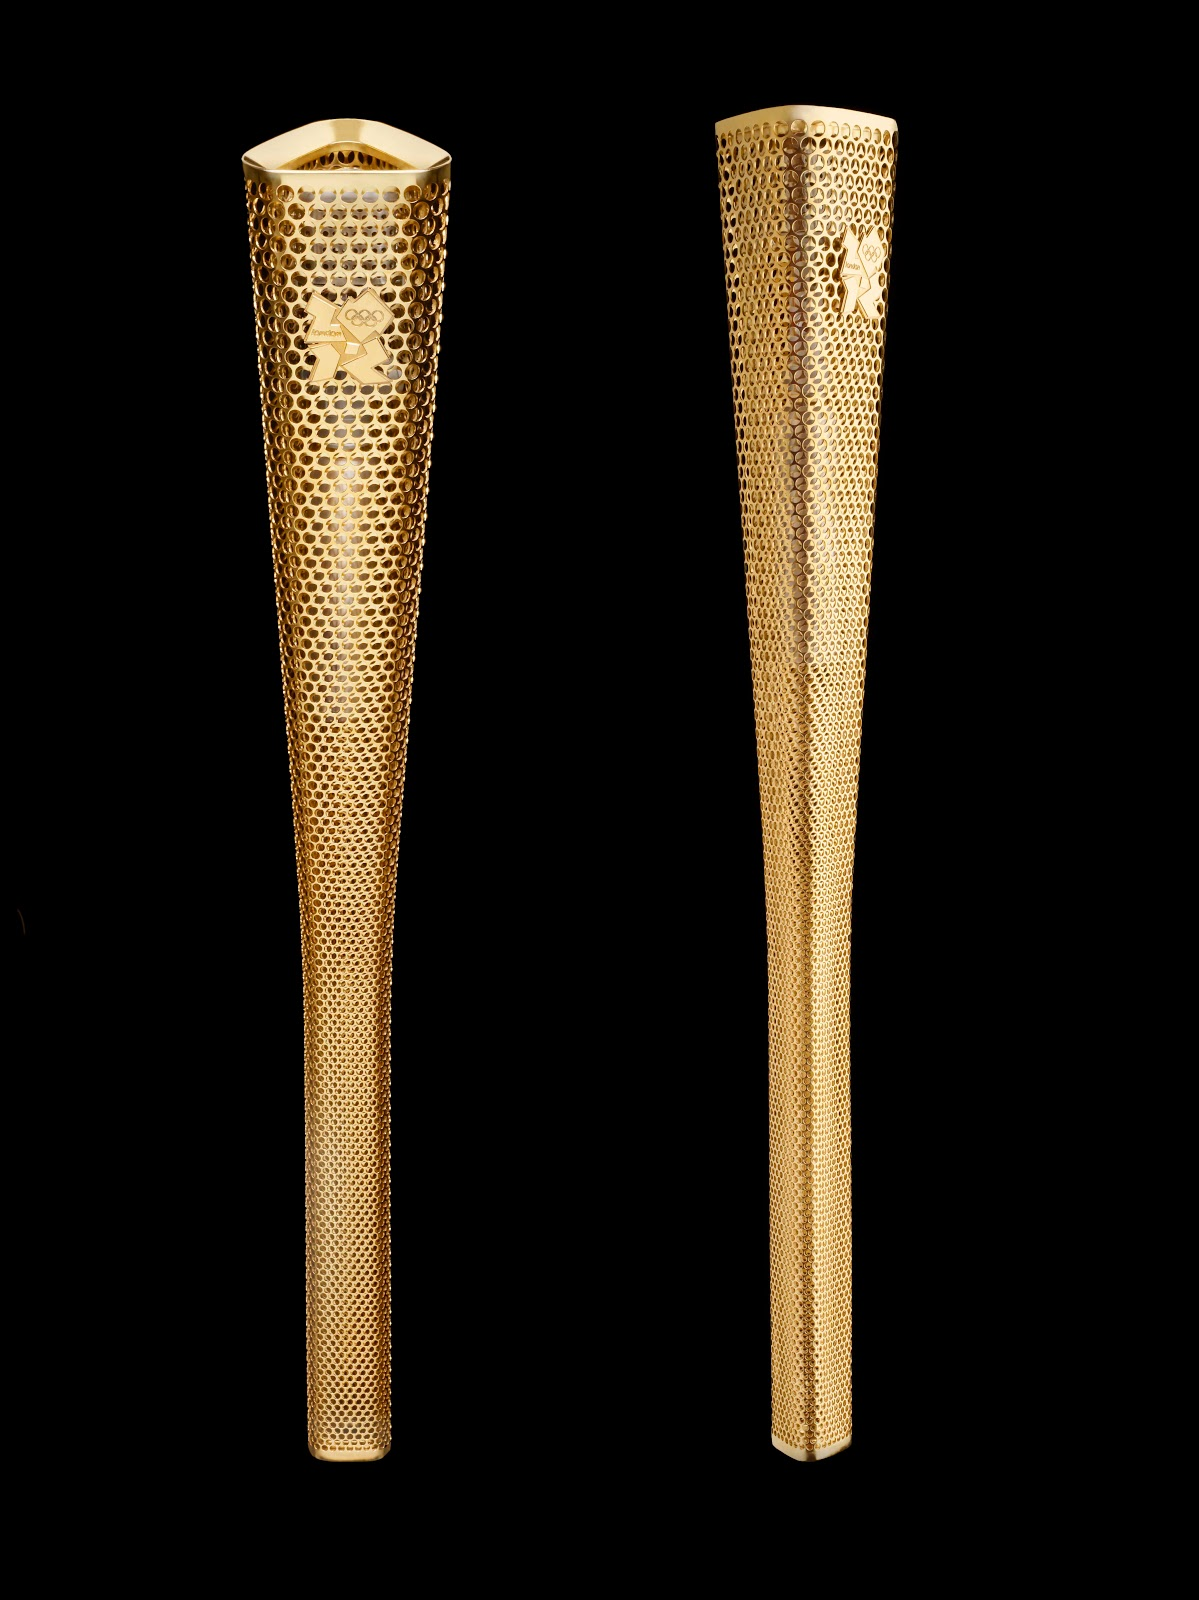 Hand Carried Chair >> The Style Examiner: London Olympic Torch Wins Design of the Year 2012